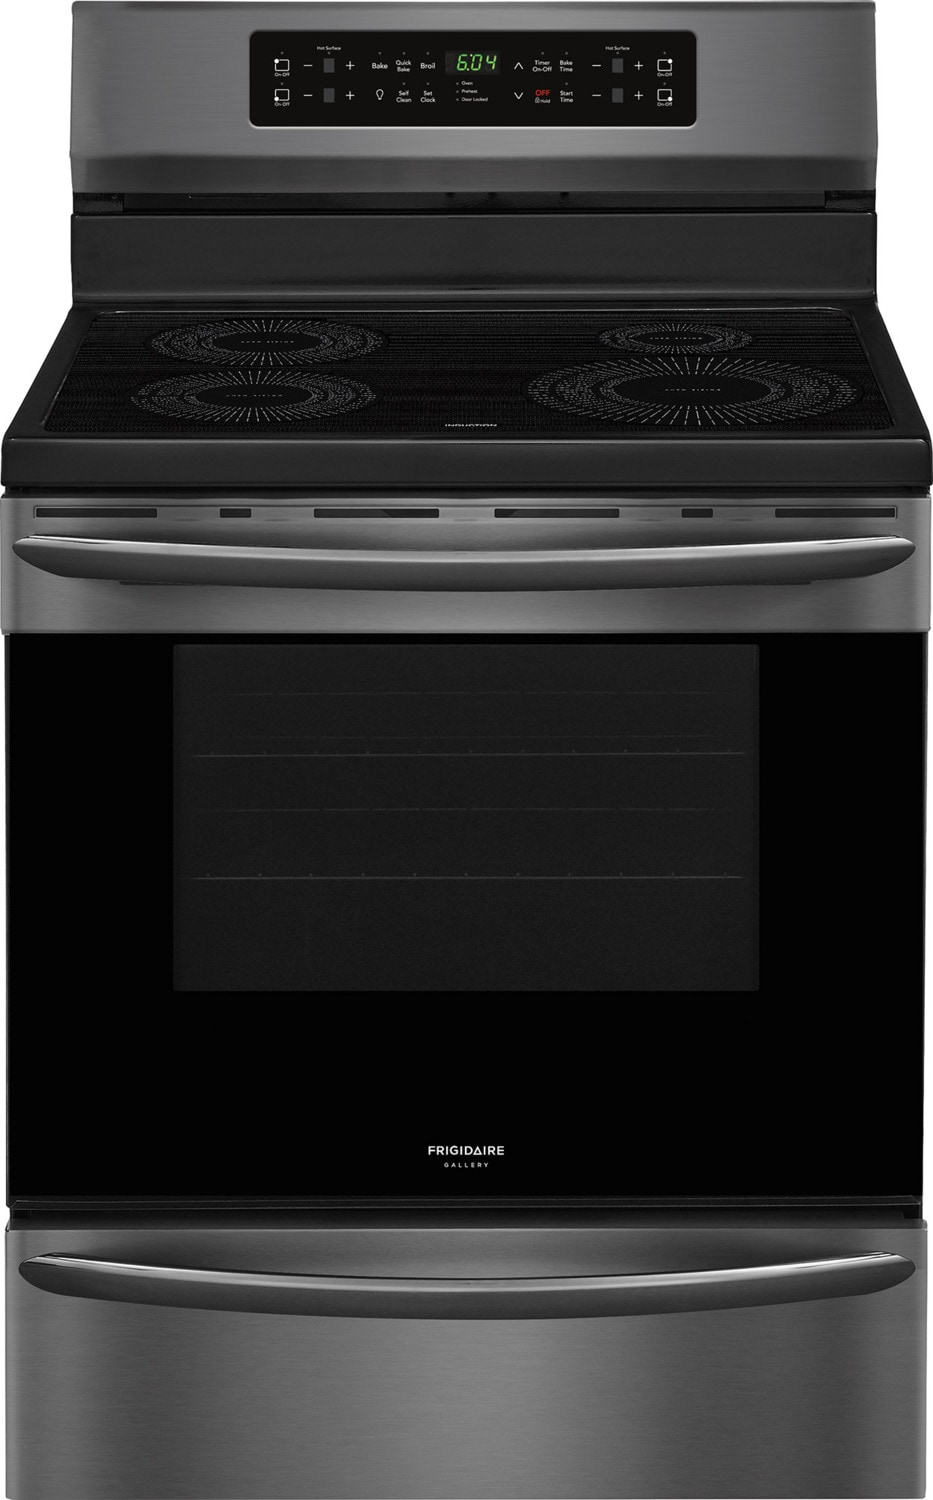 Frigidaire Gallery Black Stainless Steel Electric Induction Range (5.4 Cu. Ft.) - CGIF3036TD